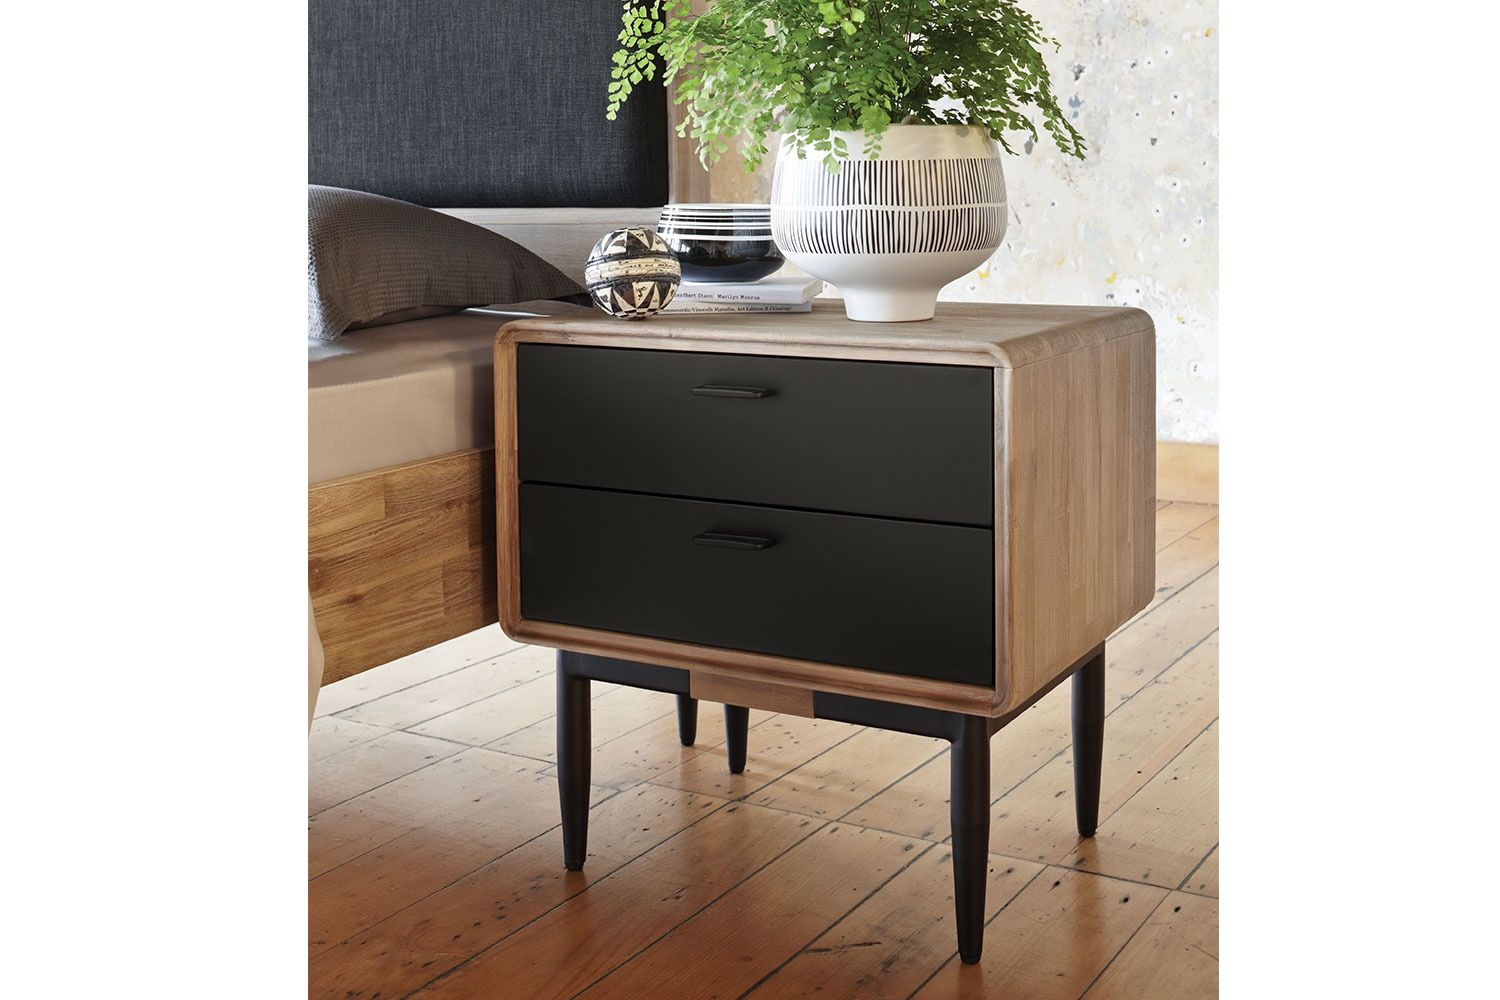 Alba Bedside Table by John Young Furniture  Small bedside table